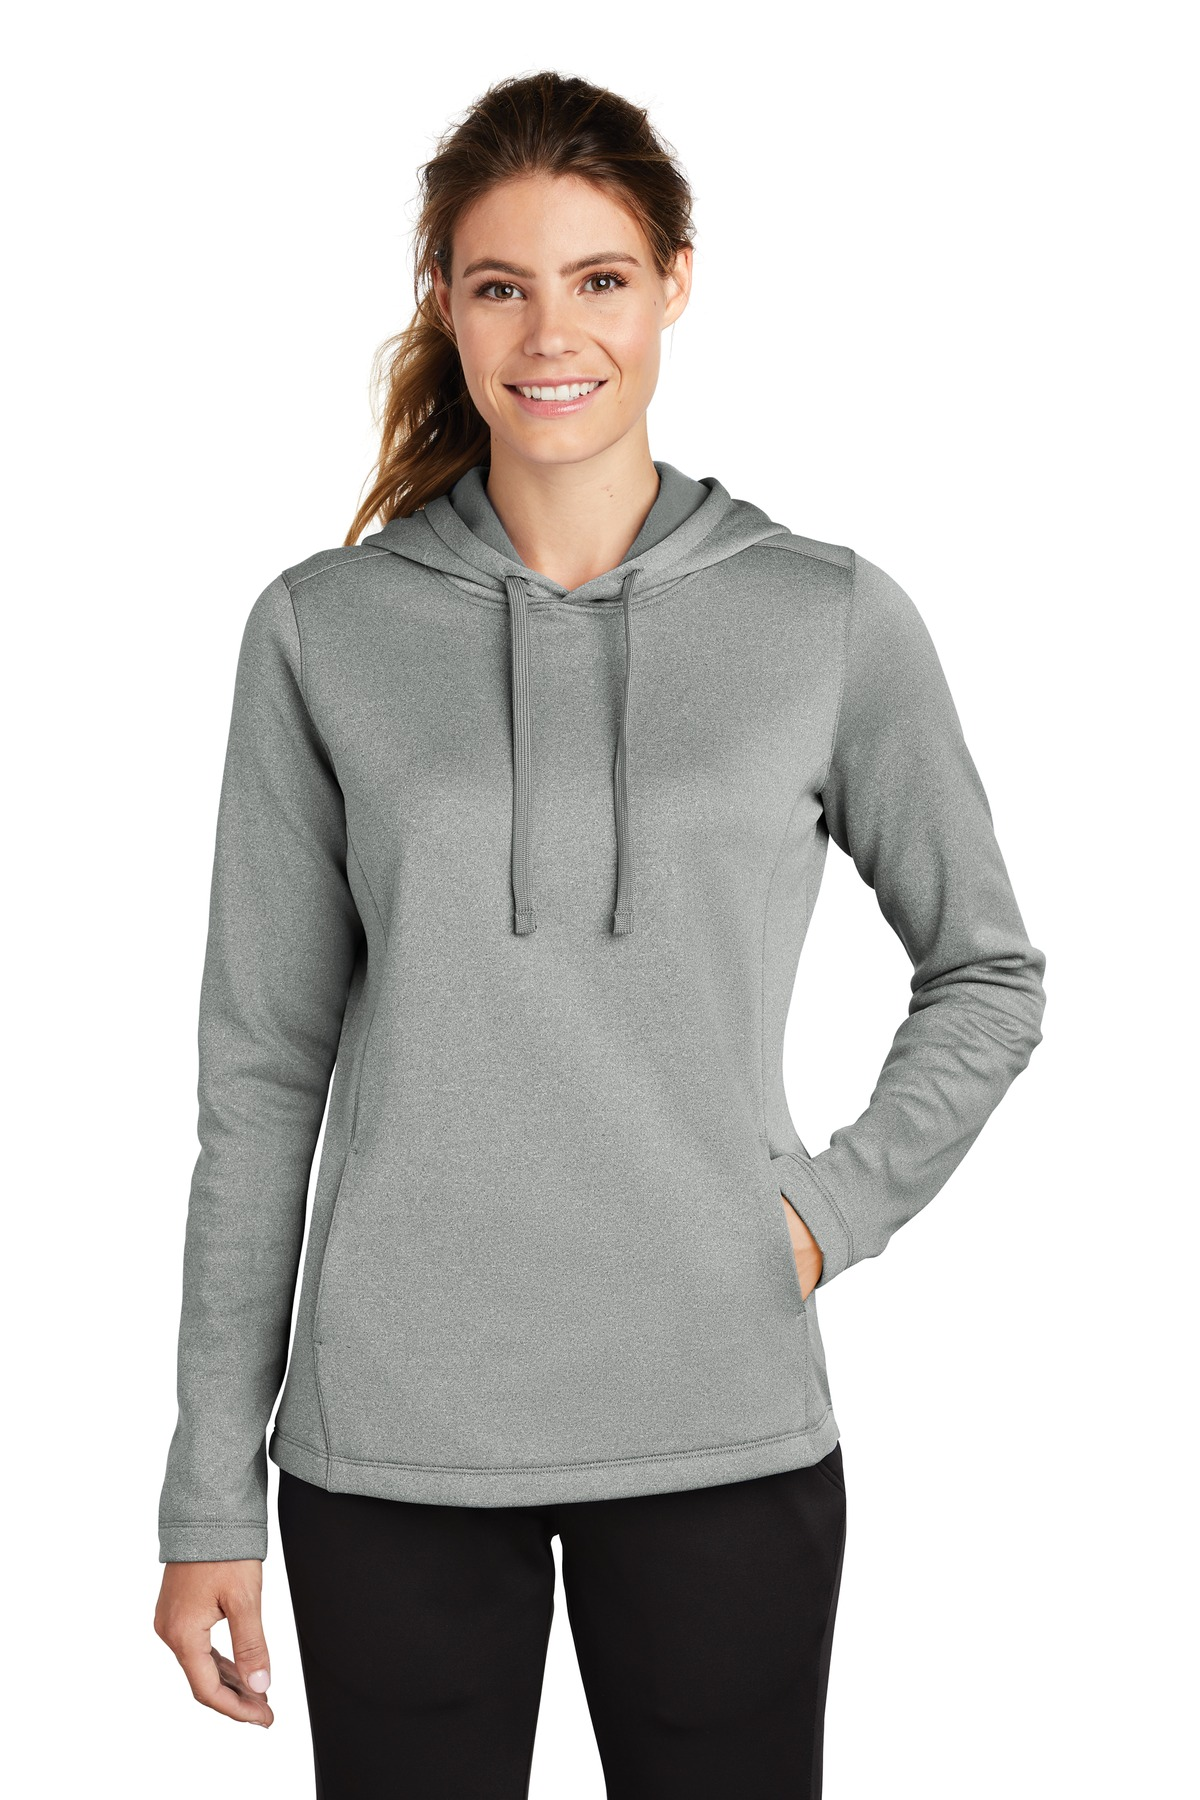 Sport-Tek  ®  Ladies PosiCharge  ®  Sport-Wick  ®  Heather Fleece Hooded Pullover. LST264 - Dark Silver Heather